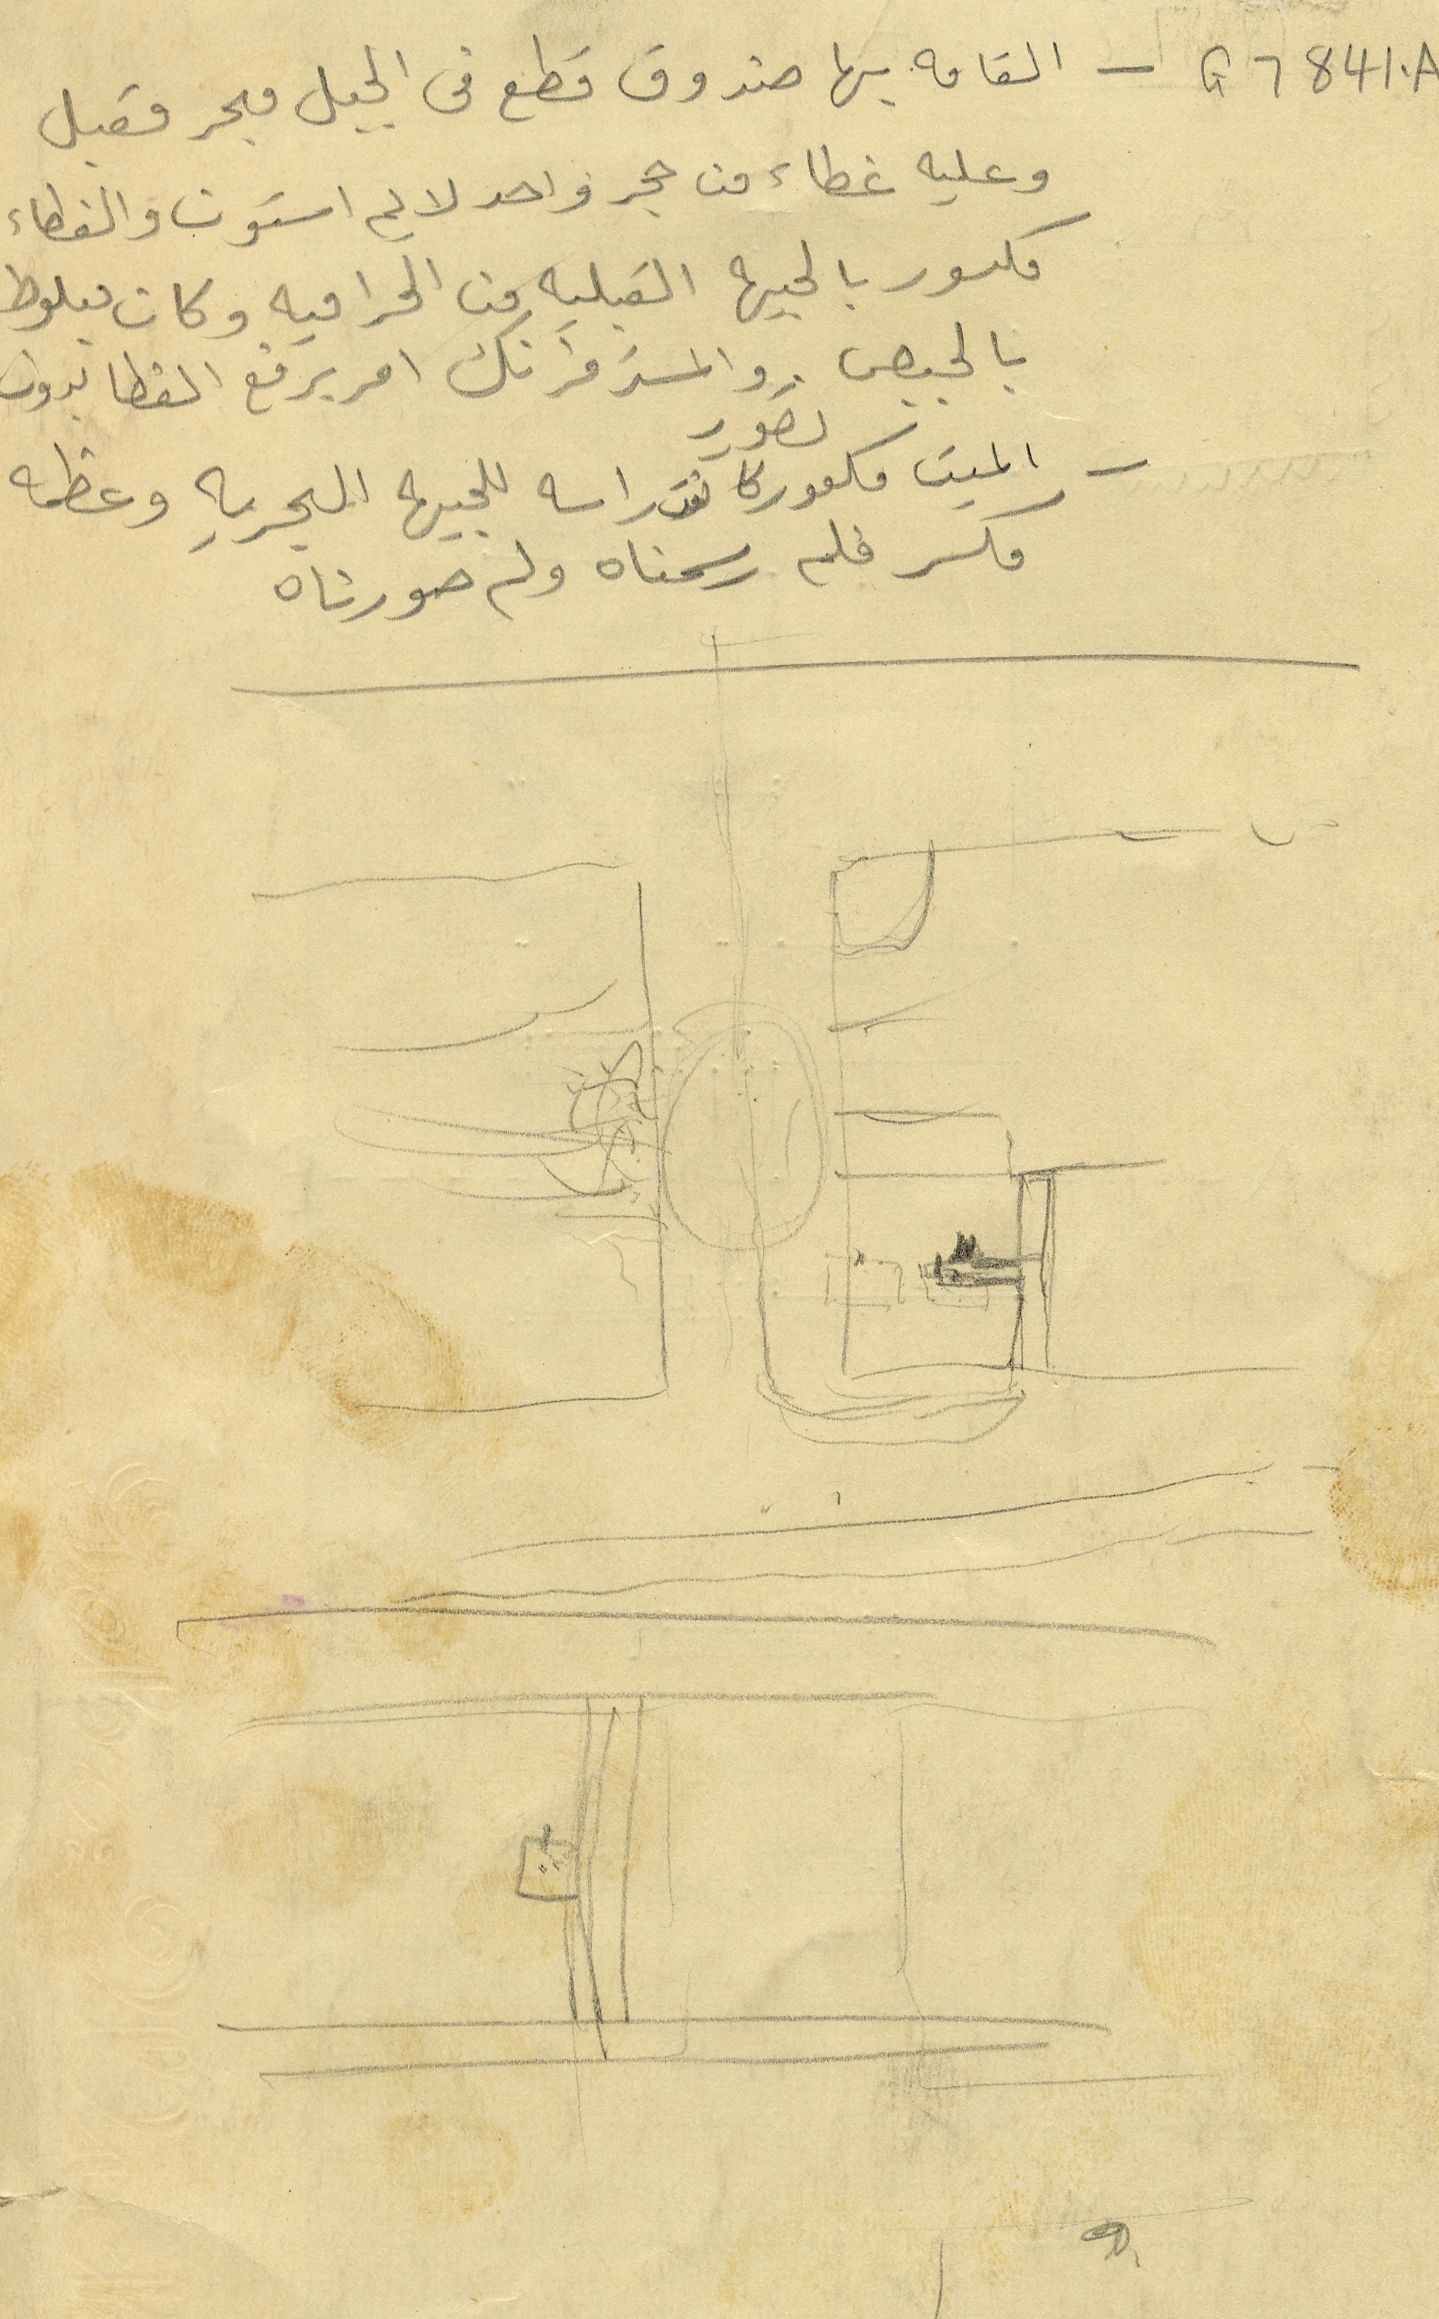 Notes: G 7841, Shaft A, notes (in Arabic)